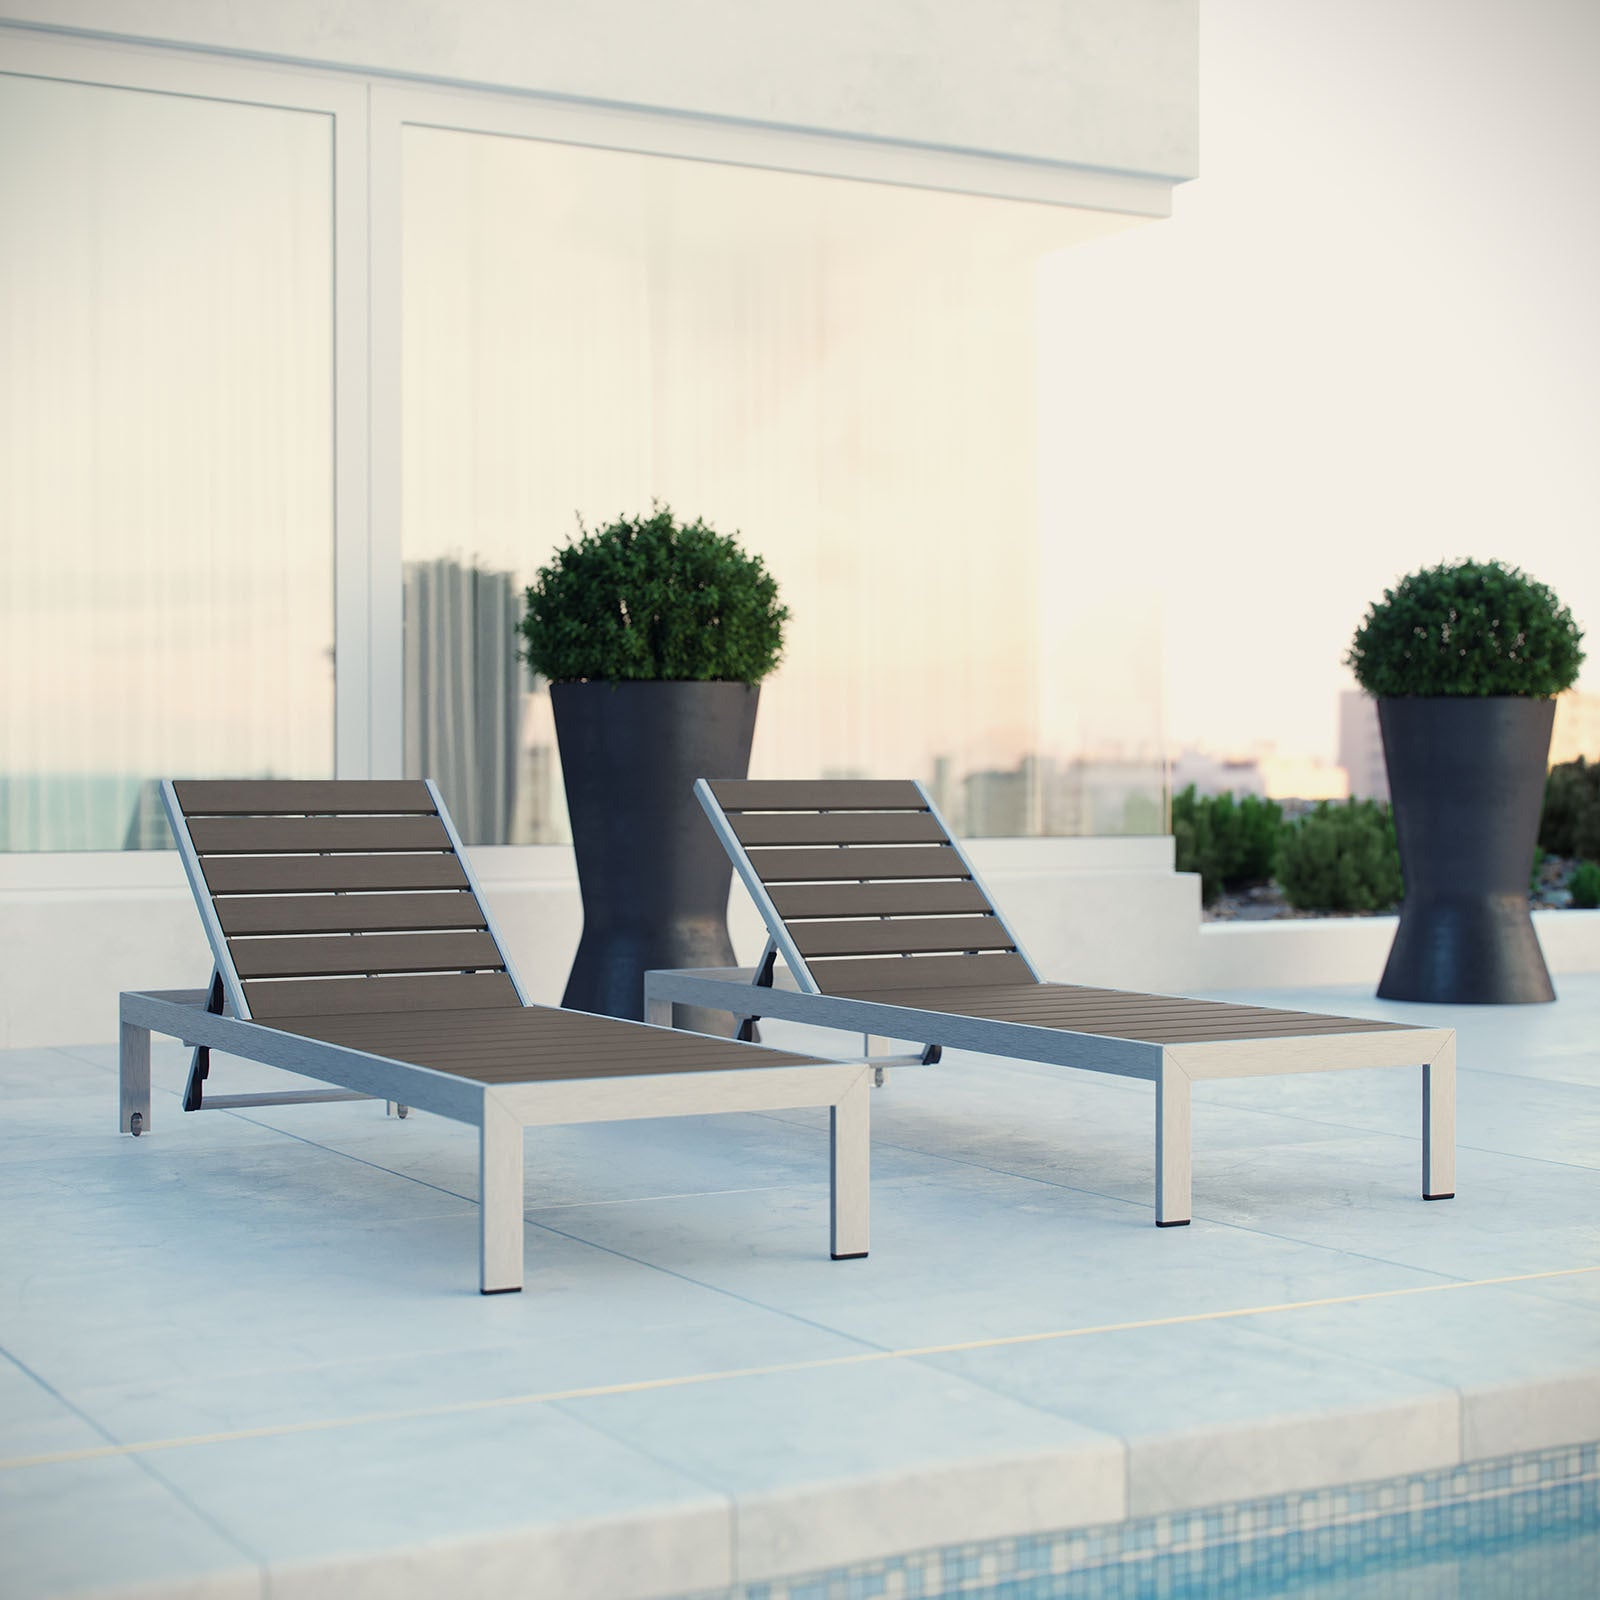 Most Recent Shore Aluminum Outdoor Grey 2 Piece Patio Chaise Lounger Set In Shore Aluminum Outdoor Chaise Lounges (View 9 of 25)